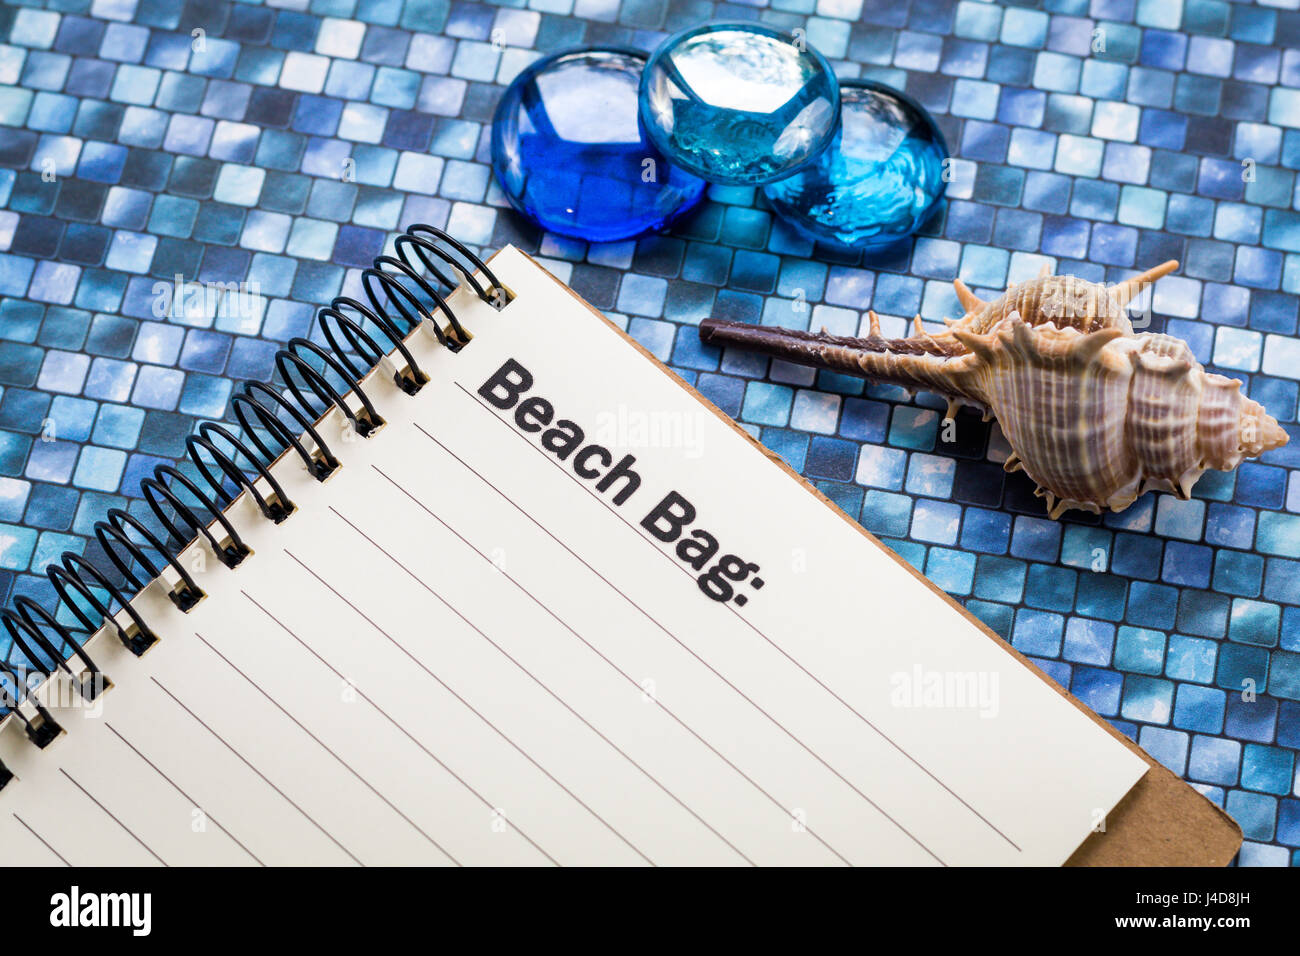 Summer beach bag, picnic, camping, packing, travel, itinerary list concept on notebook and wooden board - Stock Image